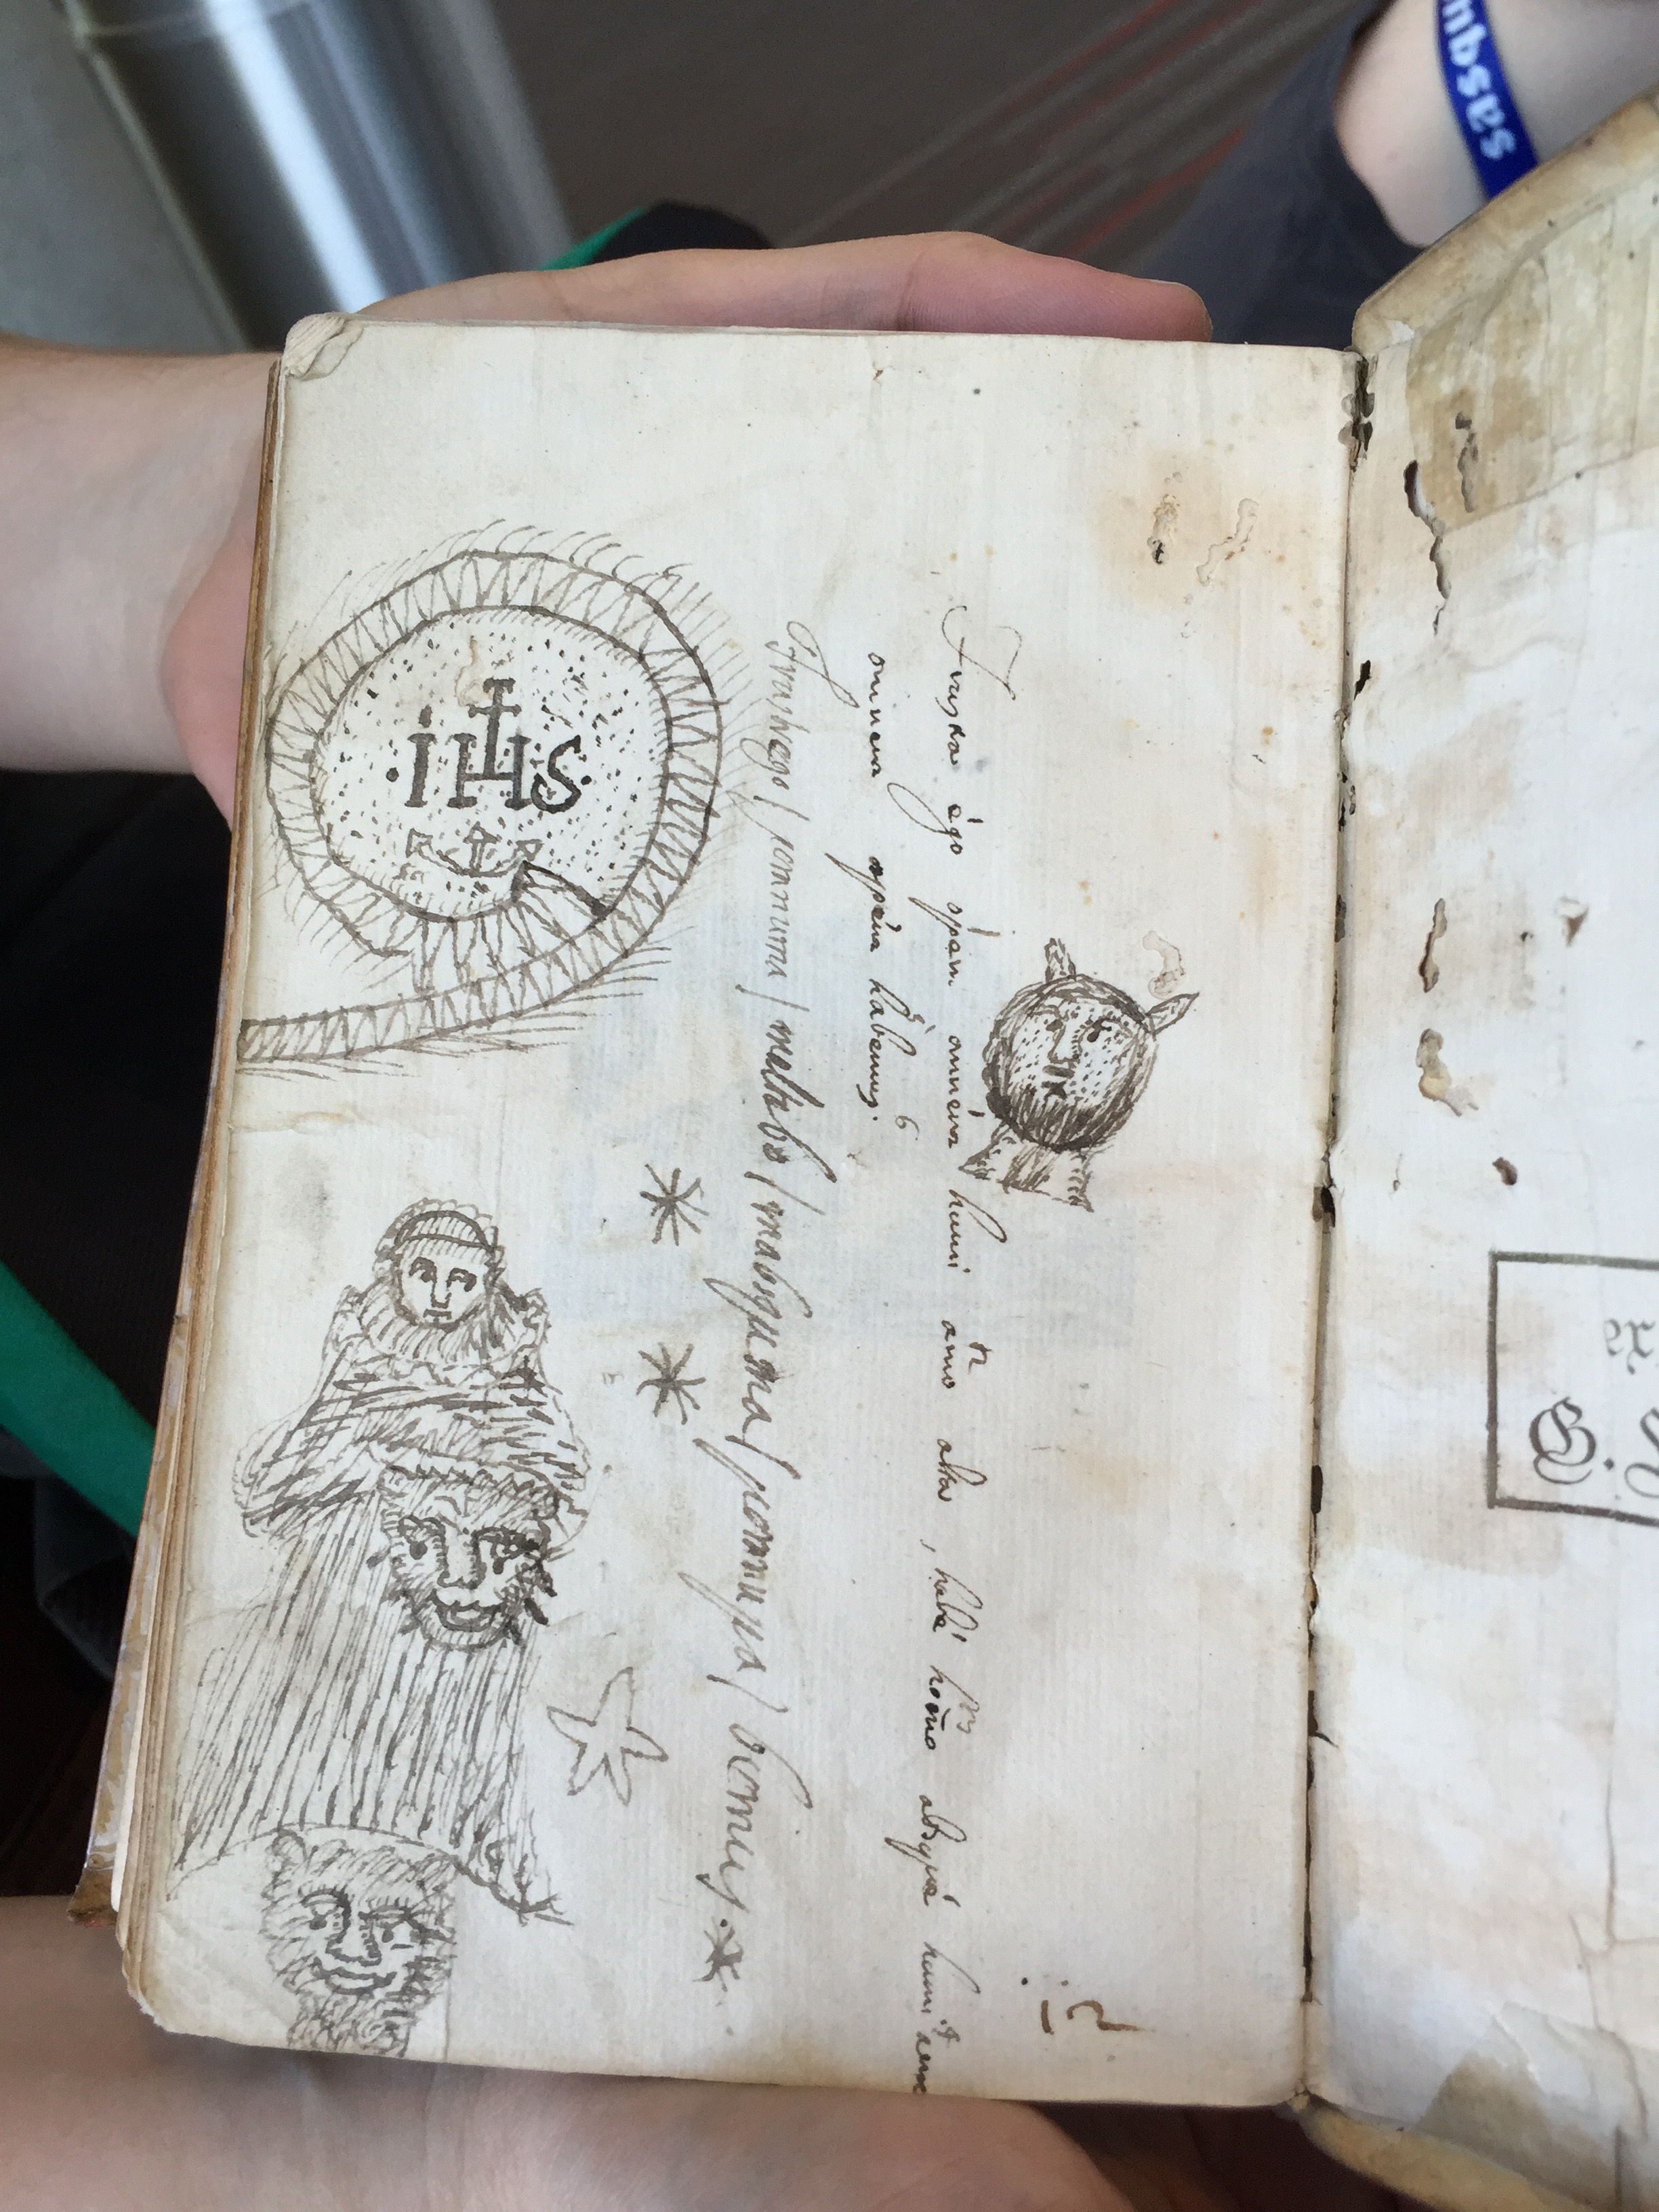 Ada Palmer, a historian at the U of Chicago (and fantasy author) gave a talk on medieval books and then showed me this end-flap doodle by a bored student in the 16th century